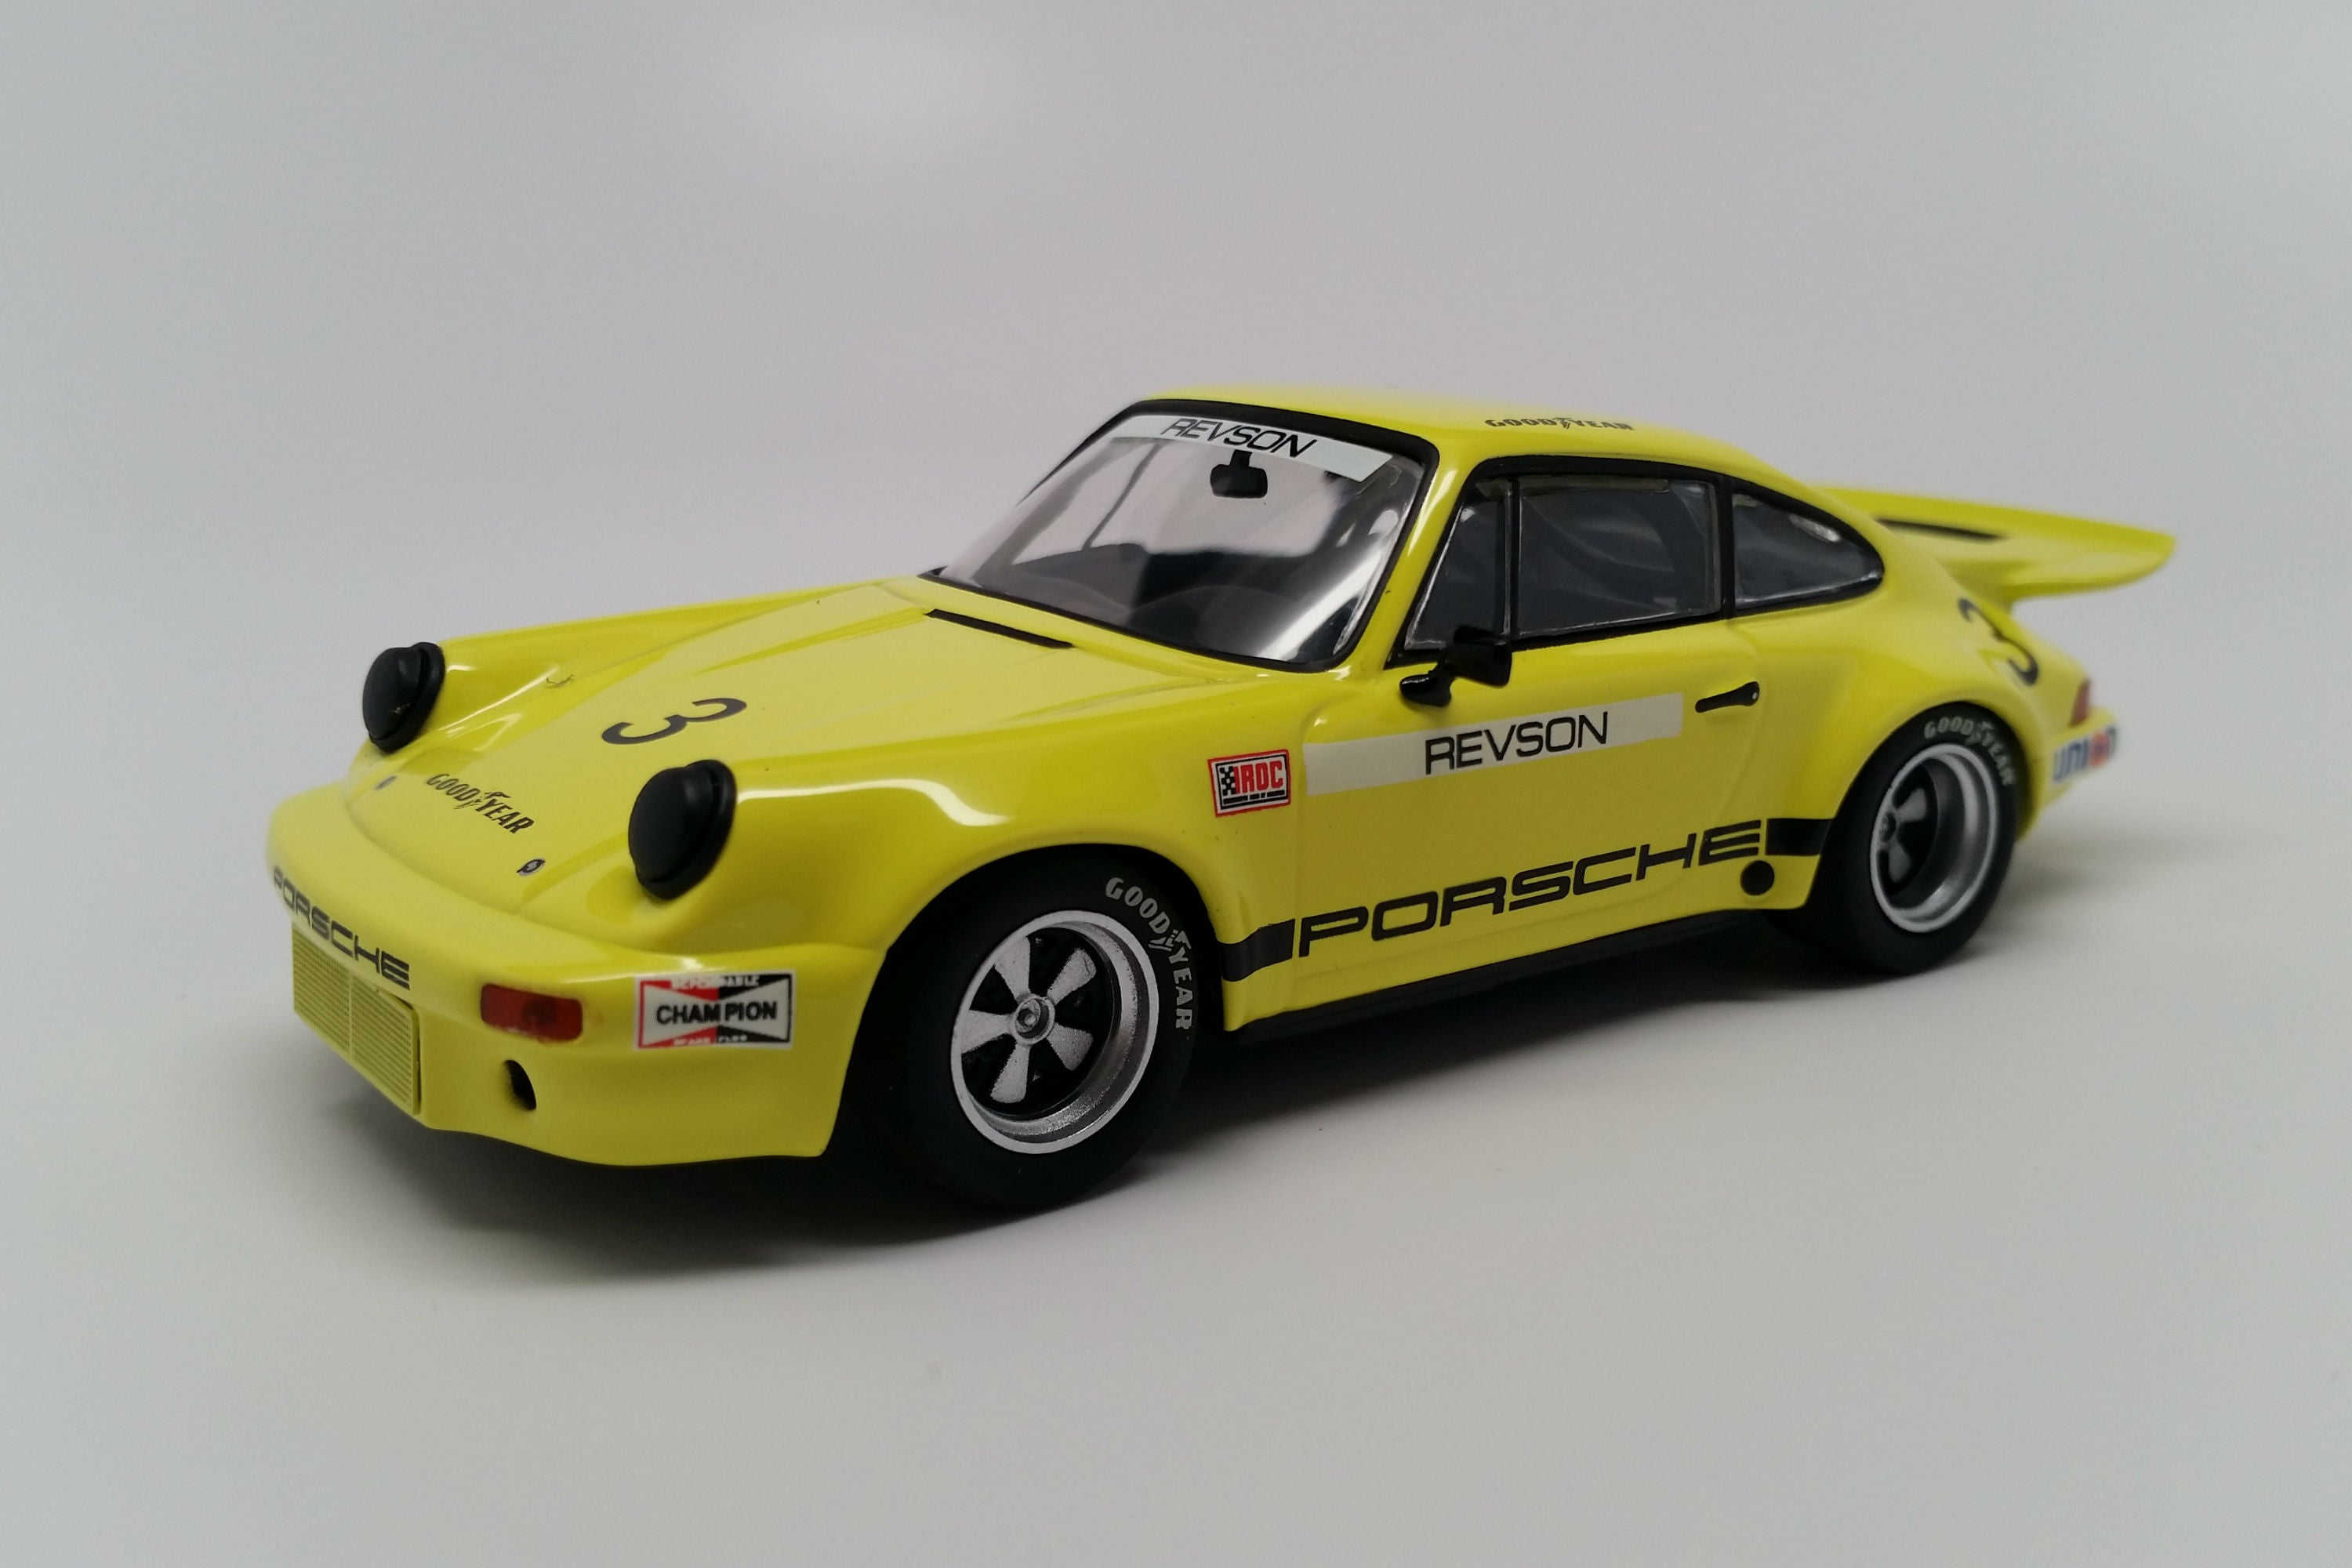 Porsche 911 Carrera 3.0 IROC RSR | 1:43 Scale Diecast Model Car by Minichamps | Front Quarter